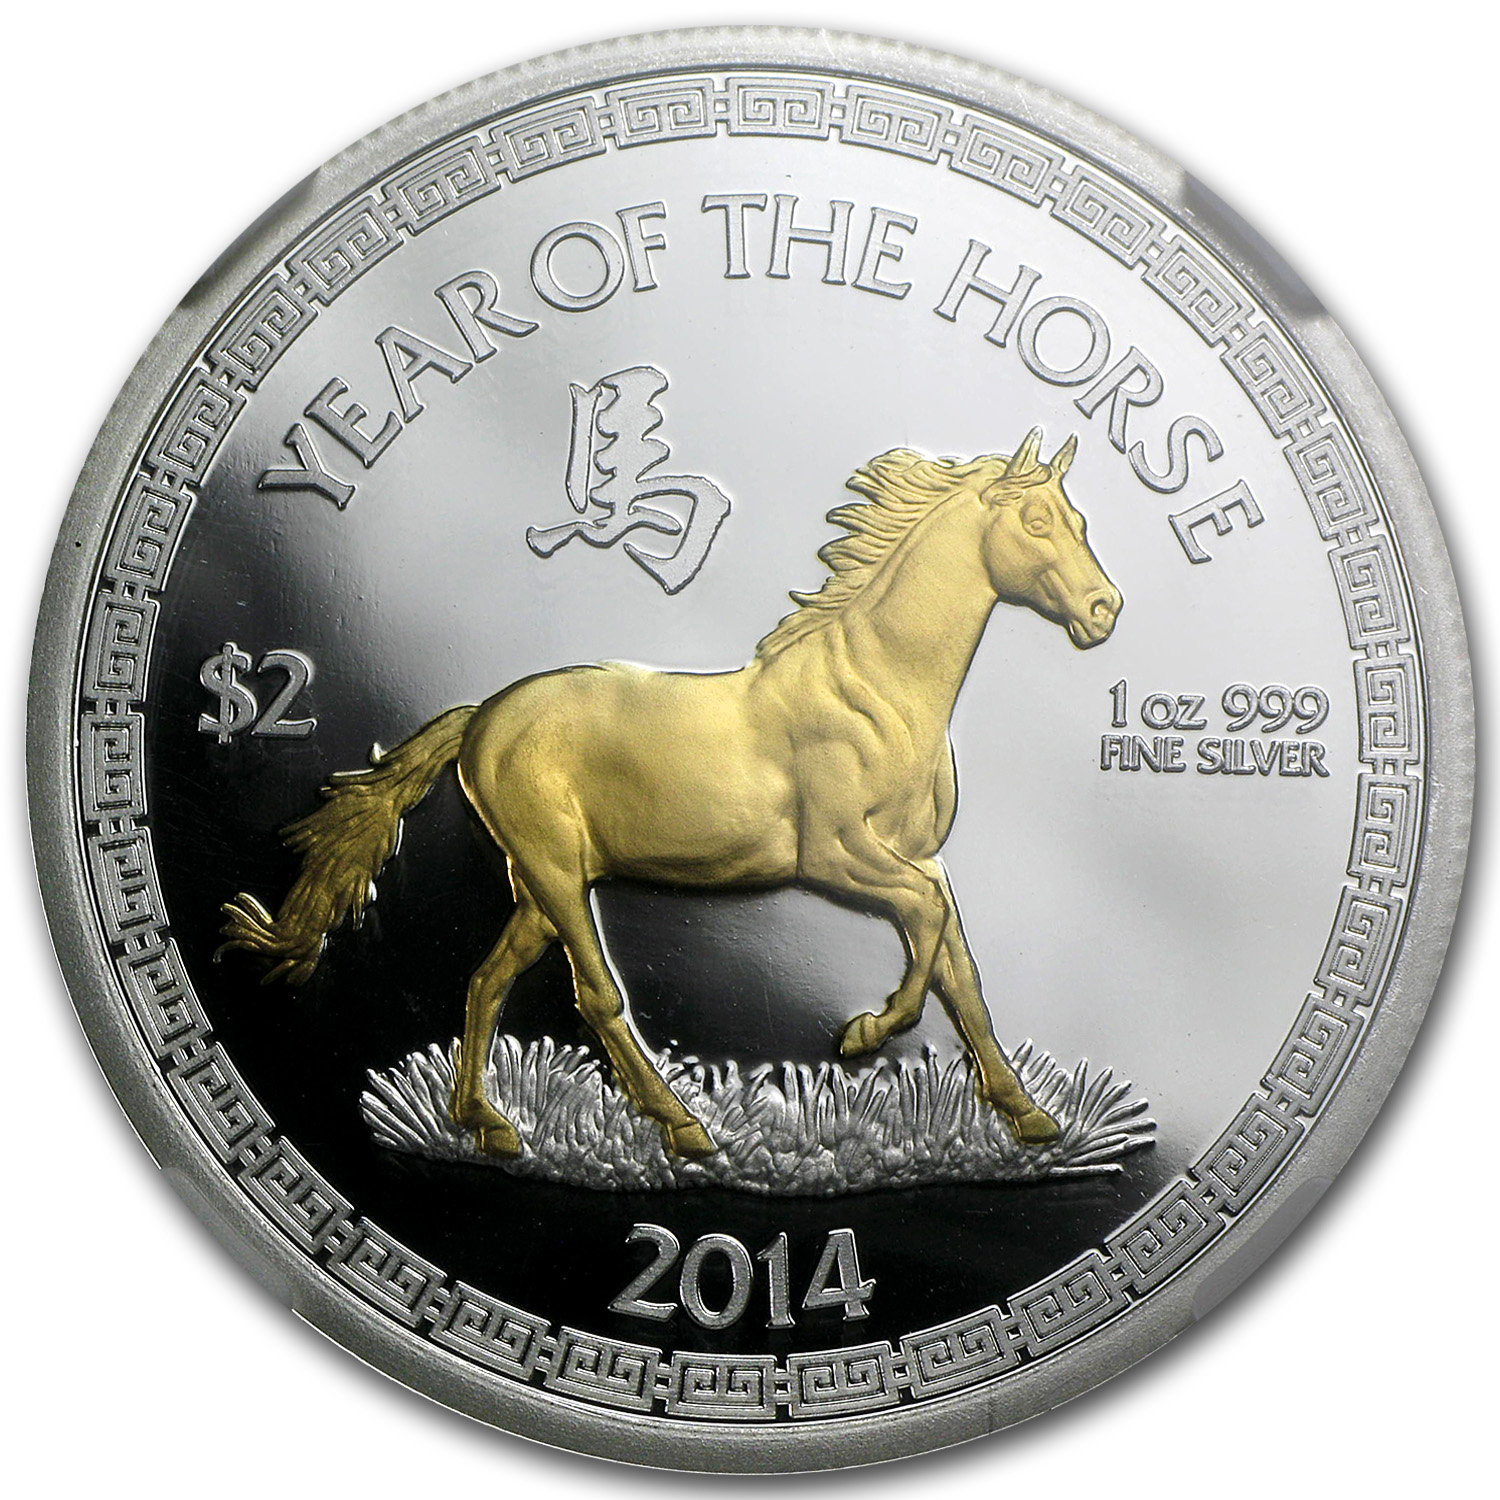 2014 1 oz Gilded Silver Coin $2 Lunar Horse NGC PF-70 UCAM